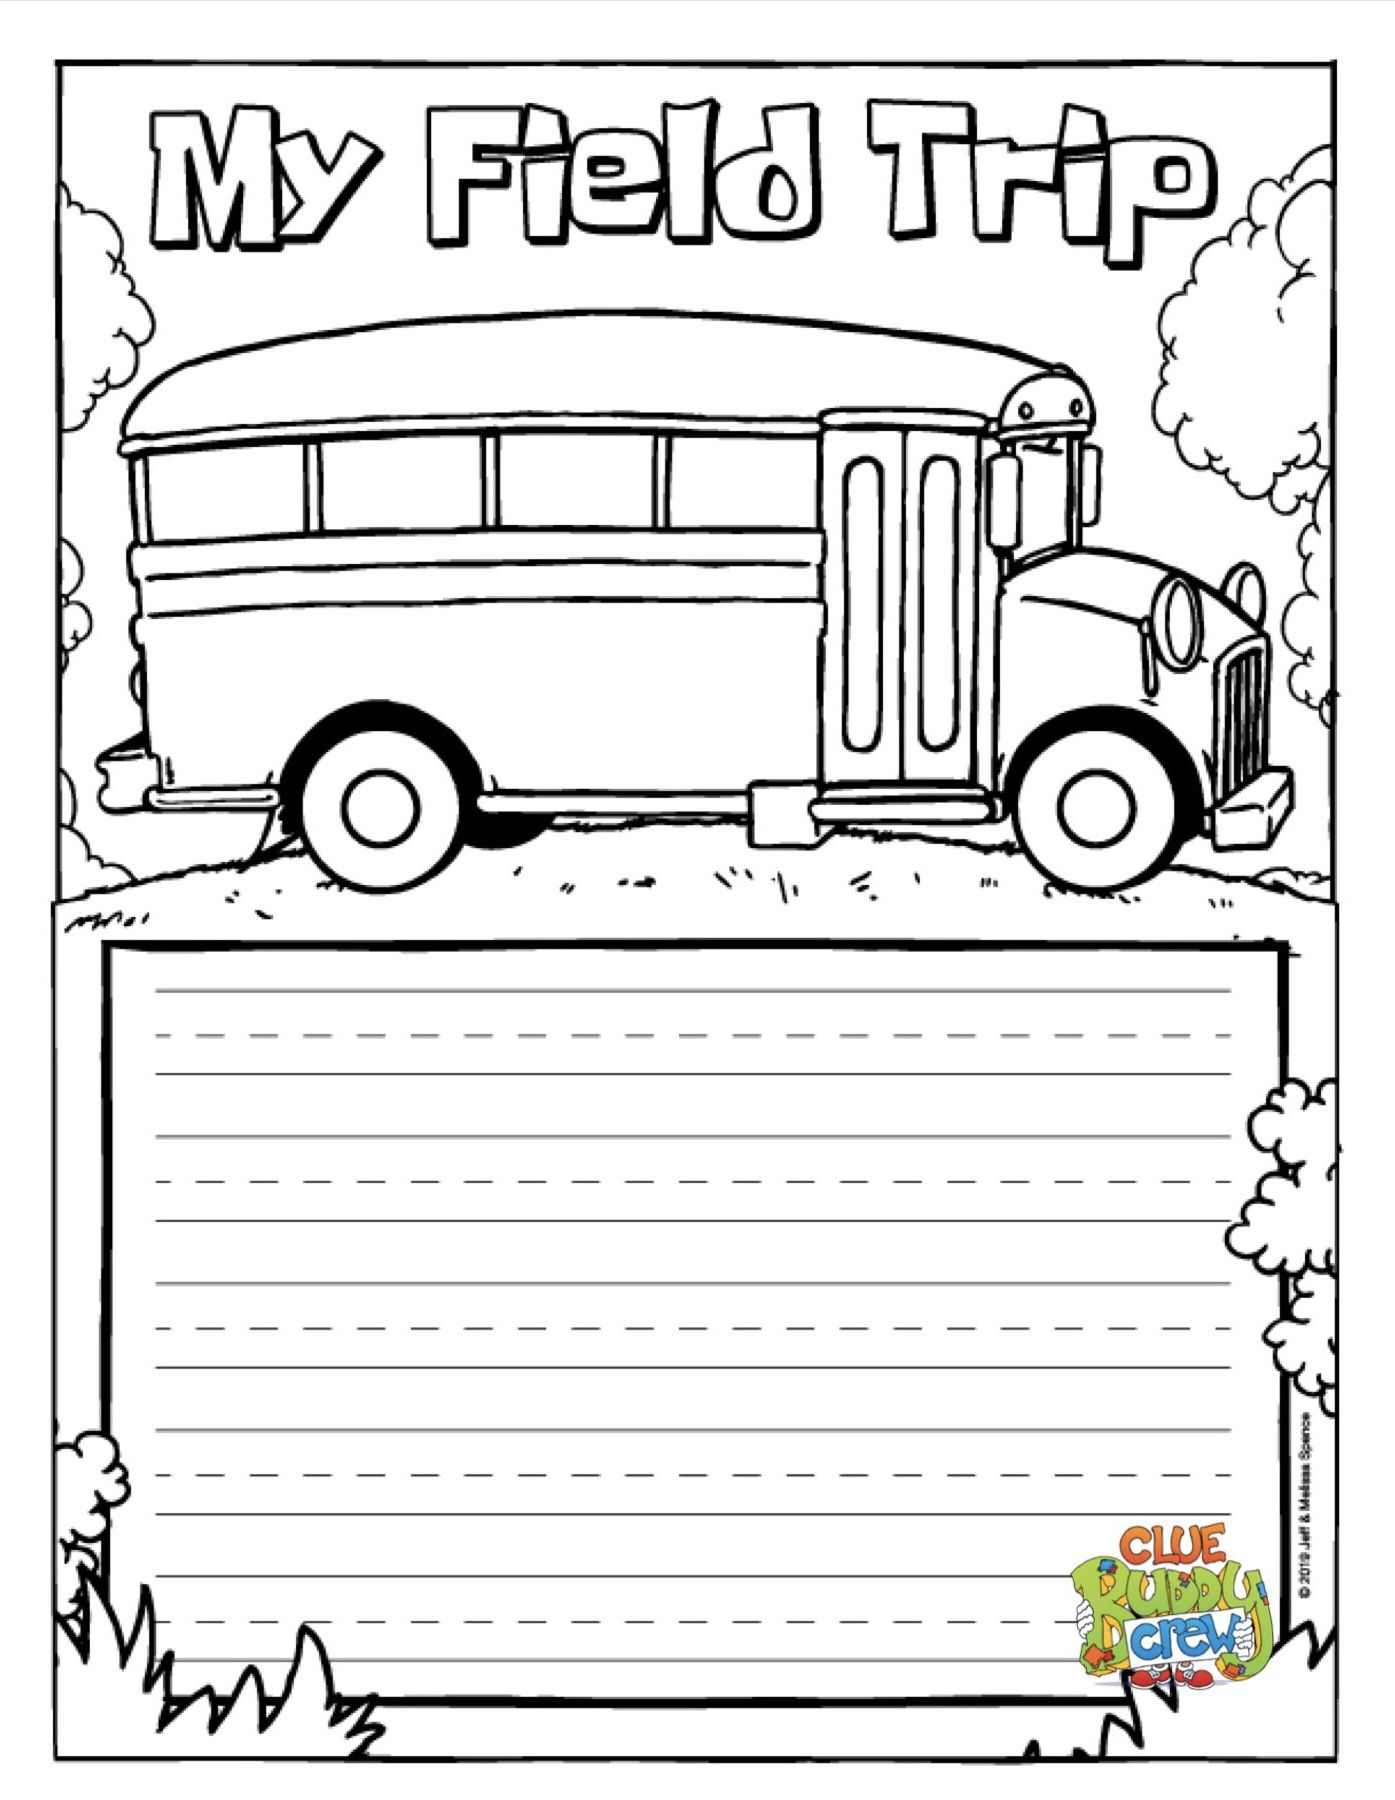 28 Field Trip Coloring Page In 2020 Field Trip Trip Coloring Pages